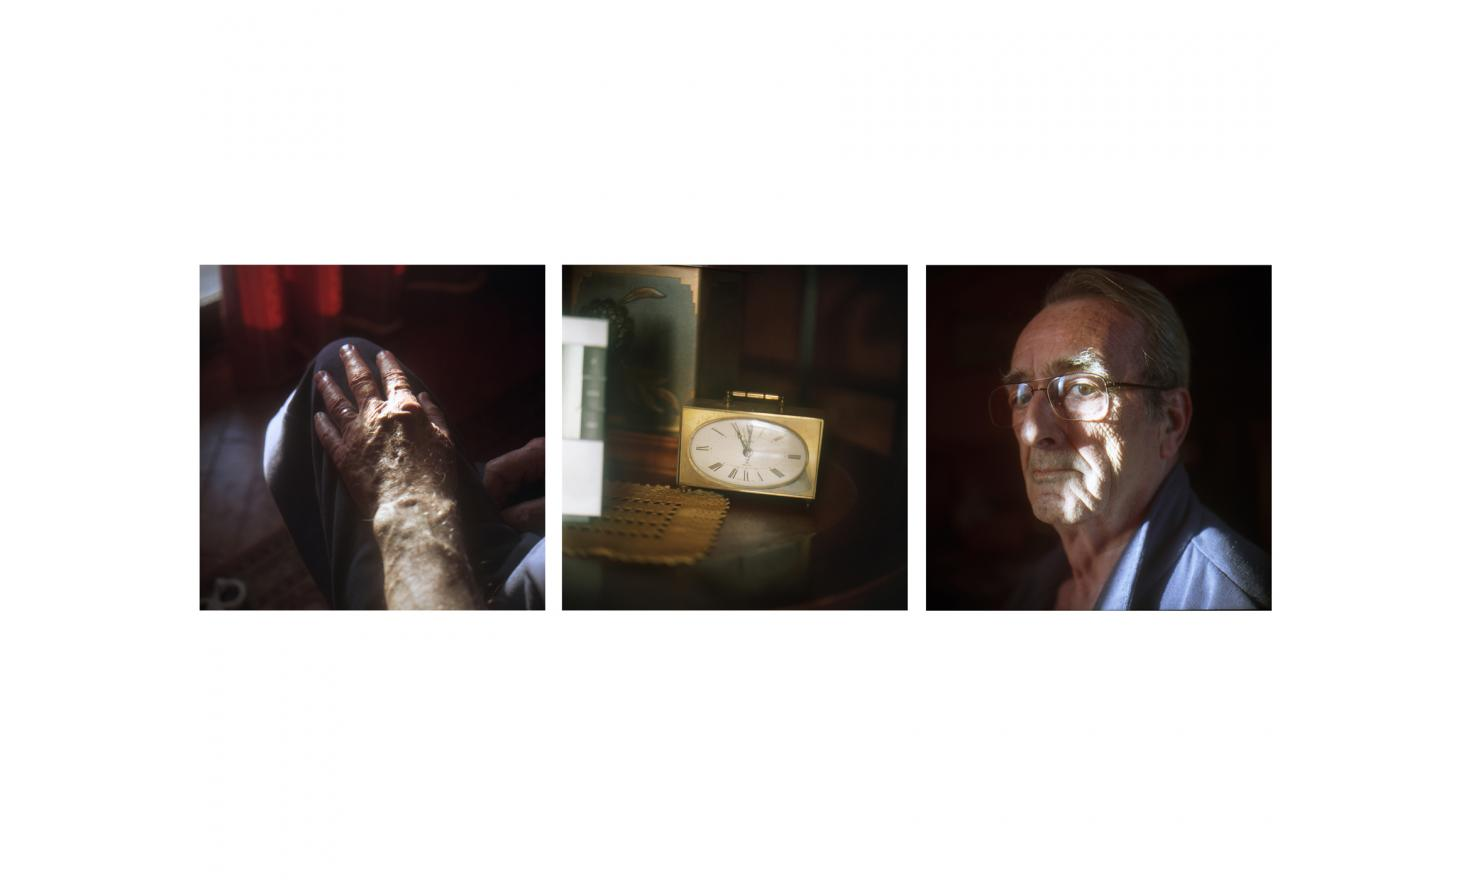 wedding ring, clock and Robert Dherbeys, Romans sur Isere 23rd of March 2015